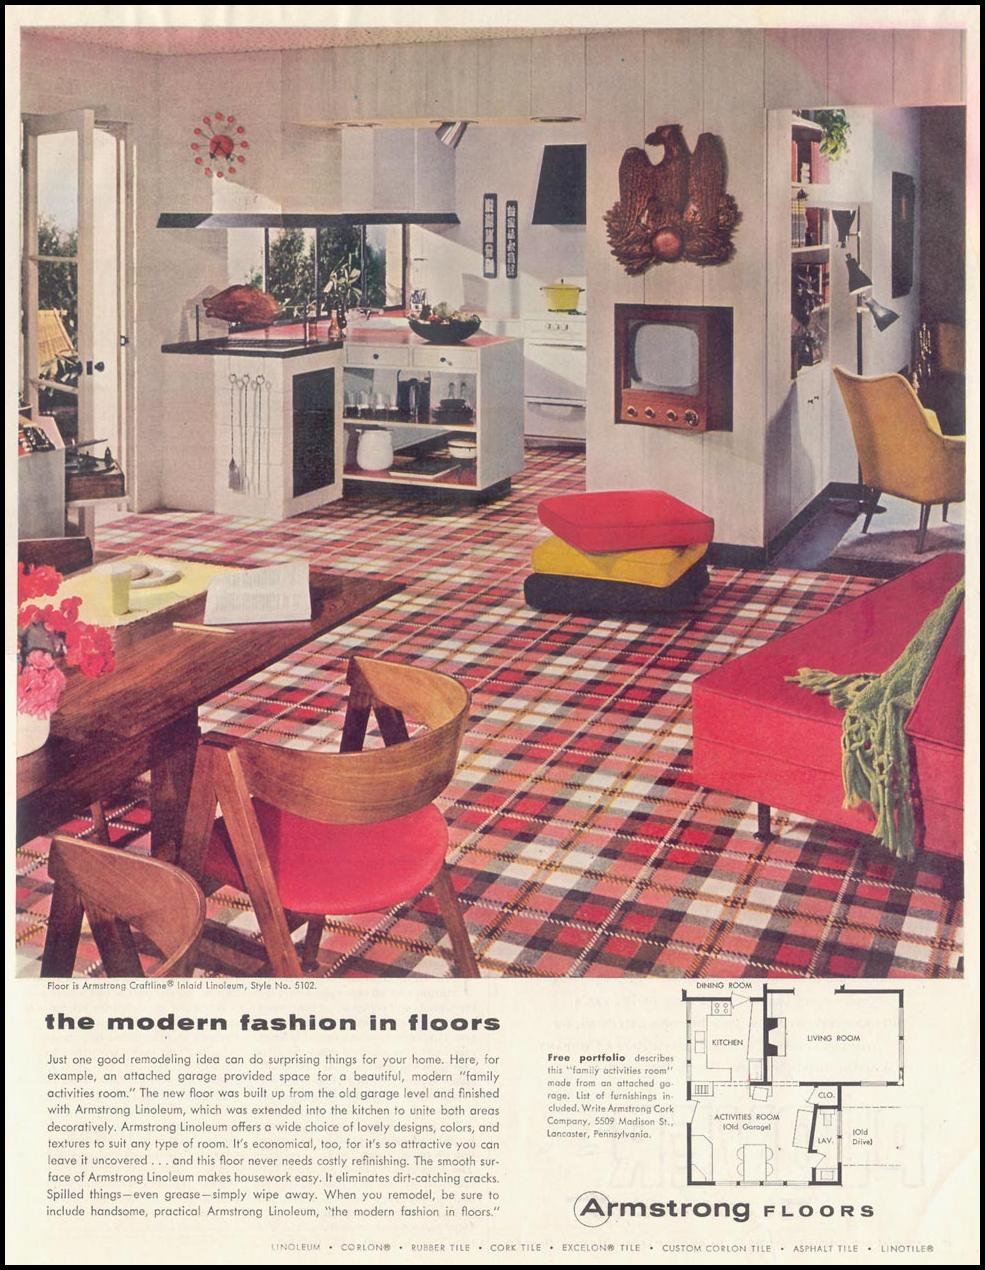 ARMSTRONG FLOORS SATURDAY EVENING POST 09/03/1955